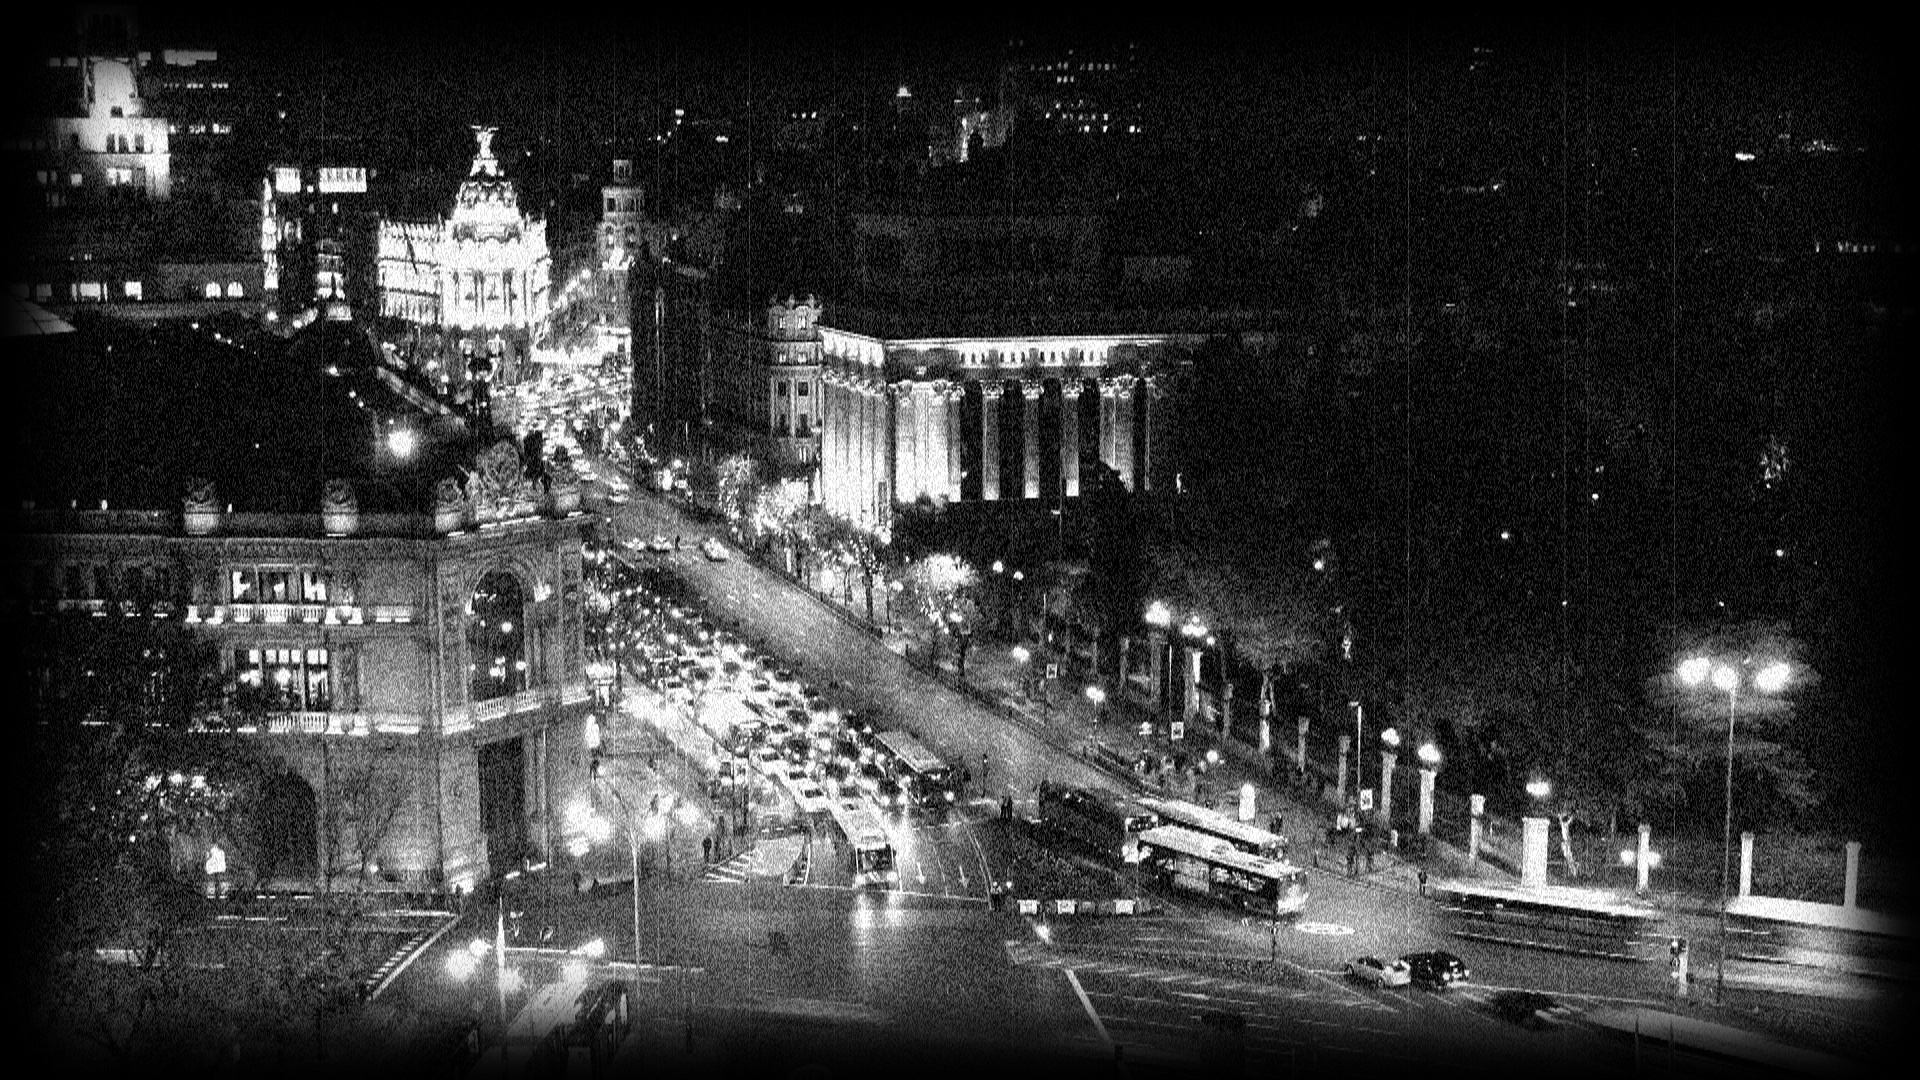 El Madrid antiguo